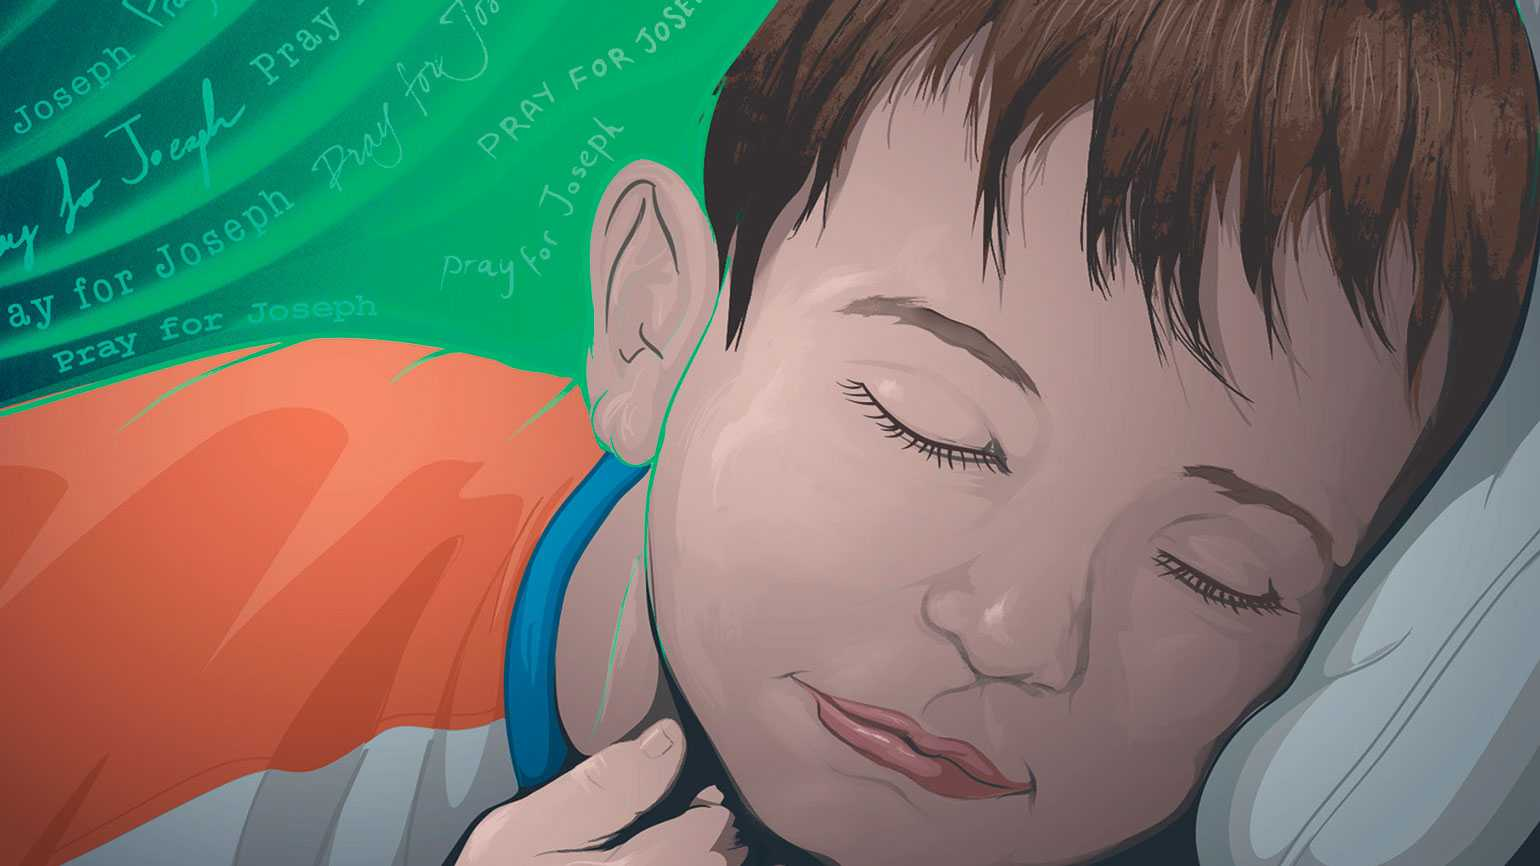 An artist's rendering of a young boy in hospital surrounded by a green glow